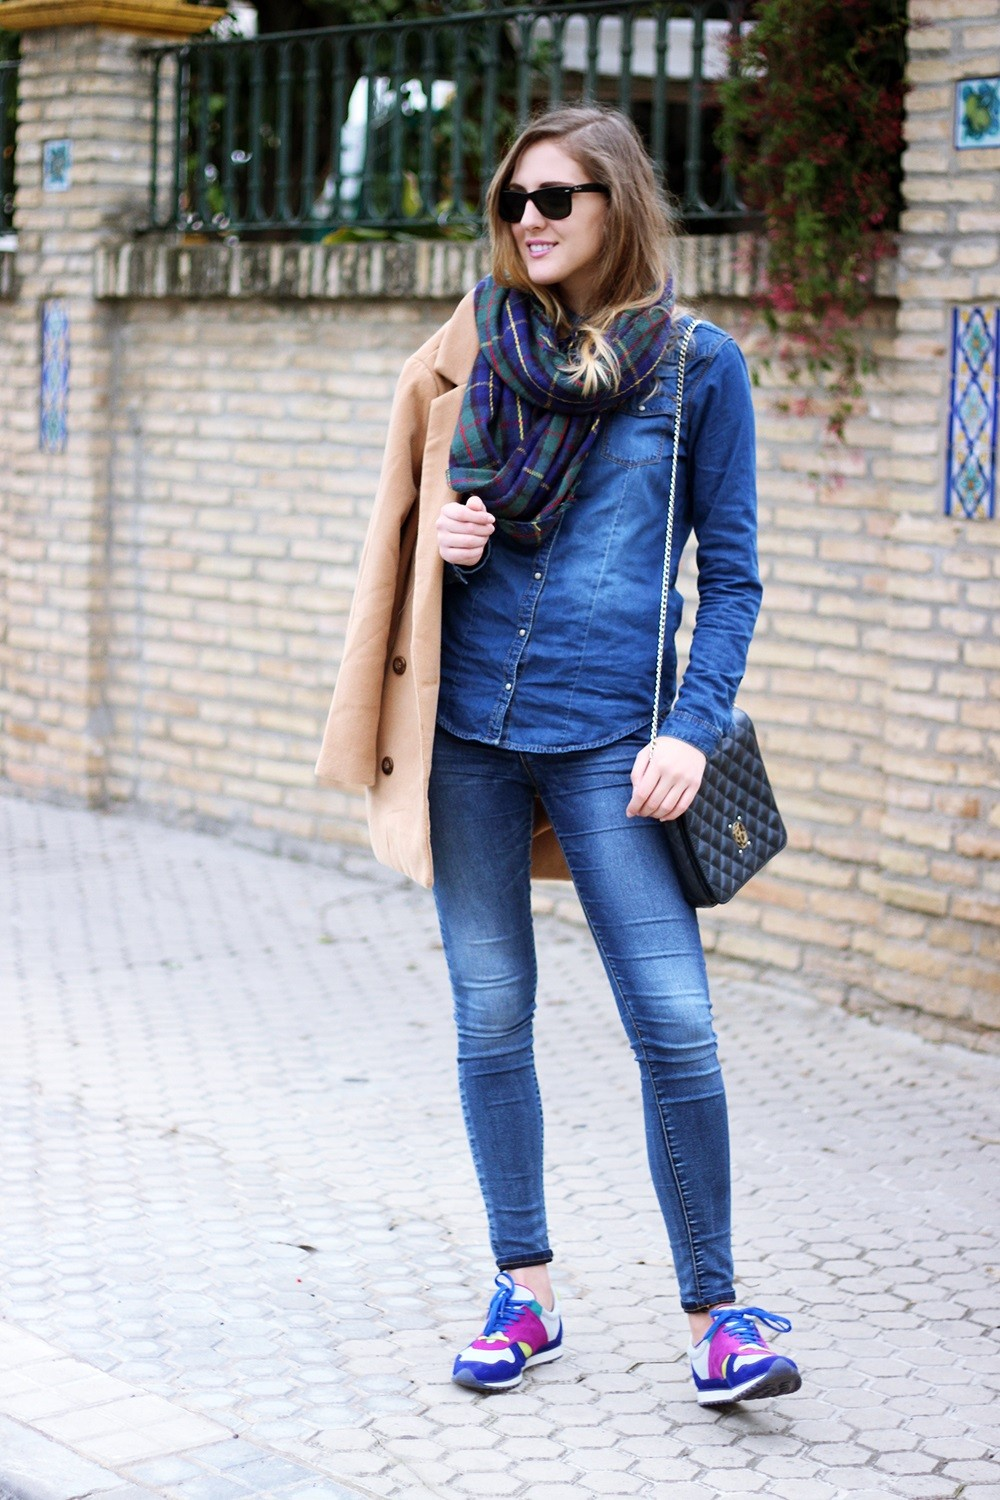 TREND denim on denim - double denim - OOTD Magazine 13